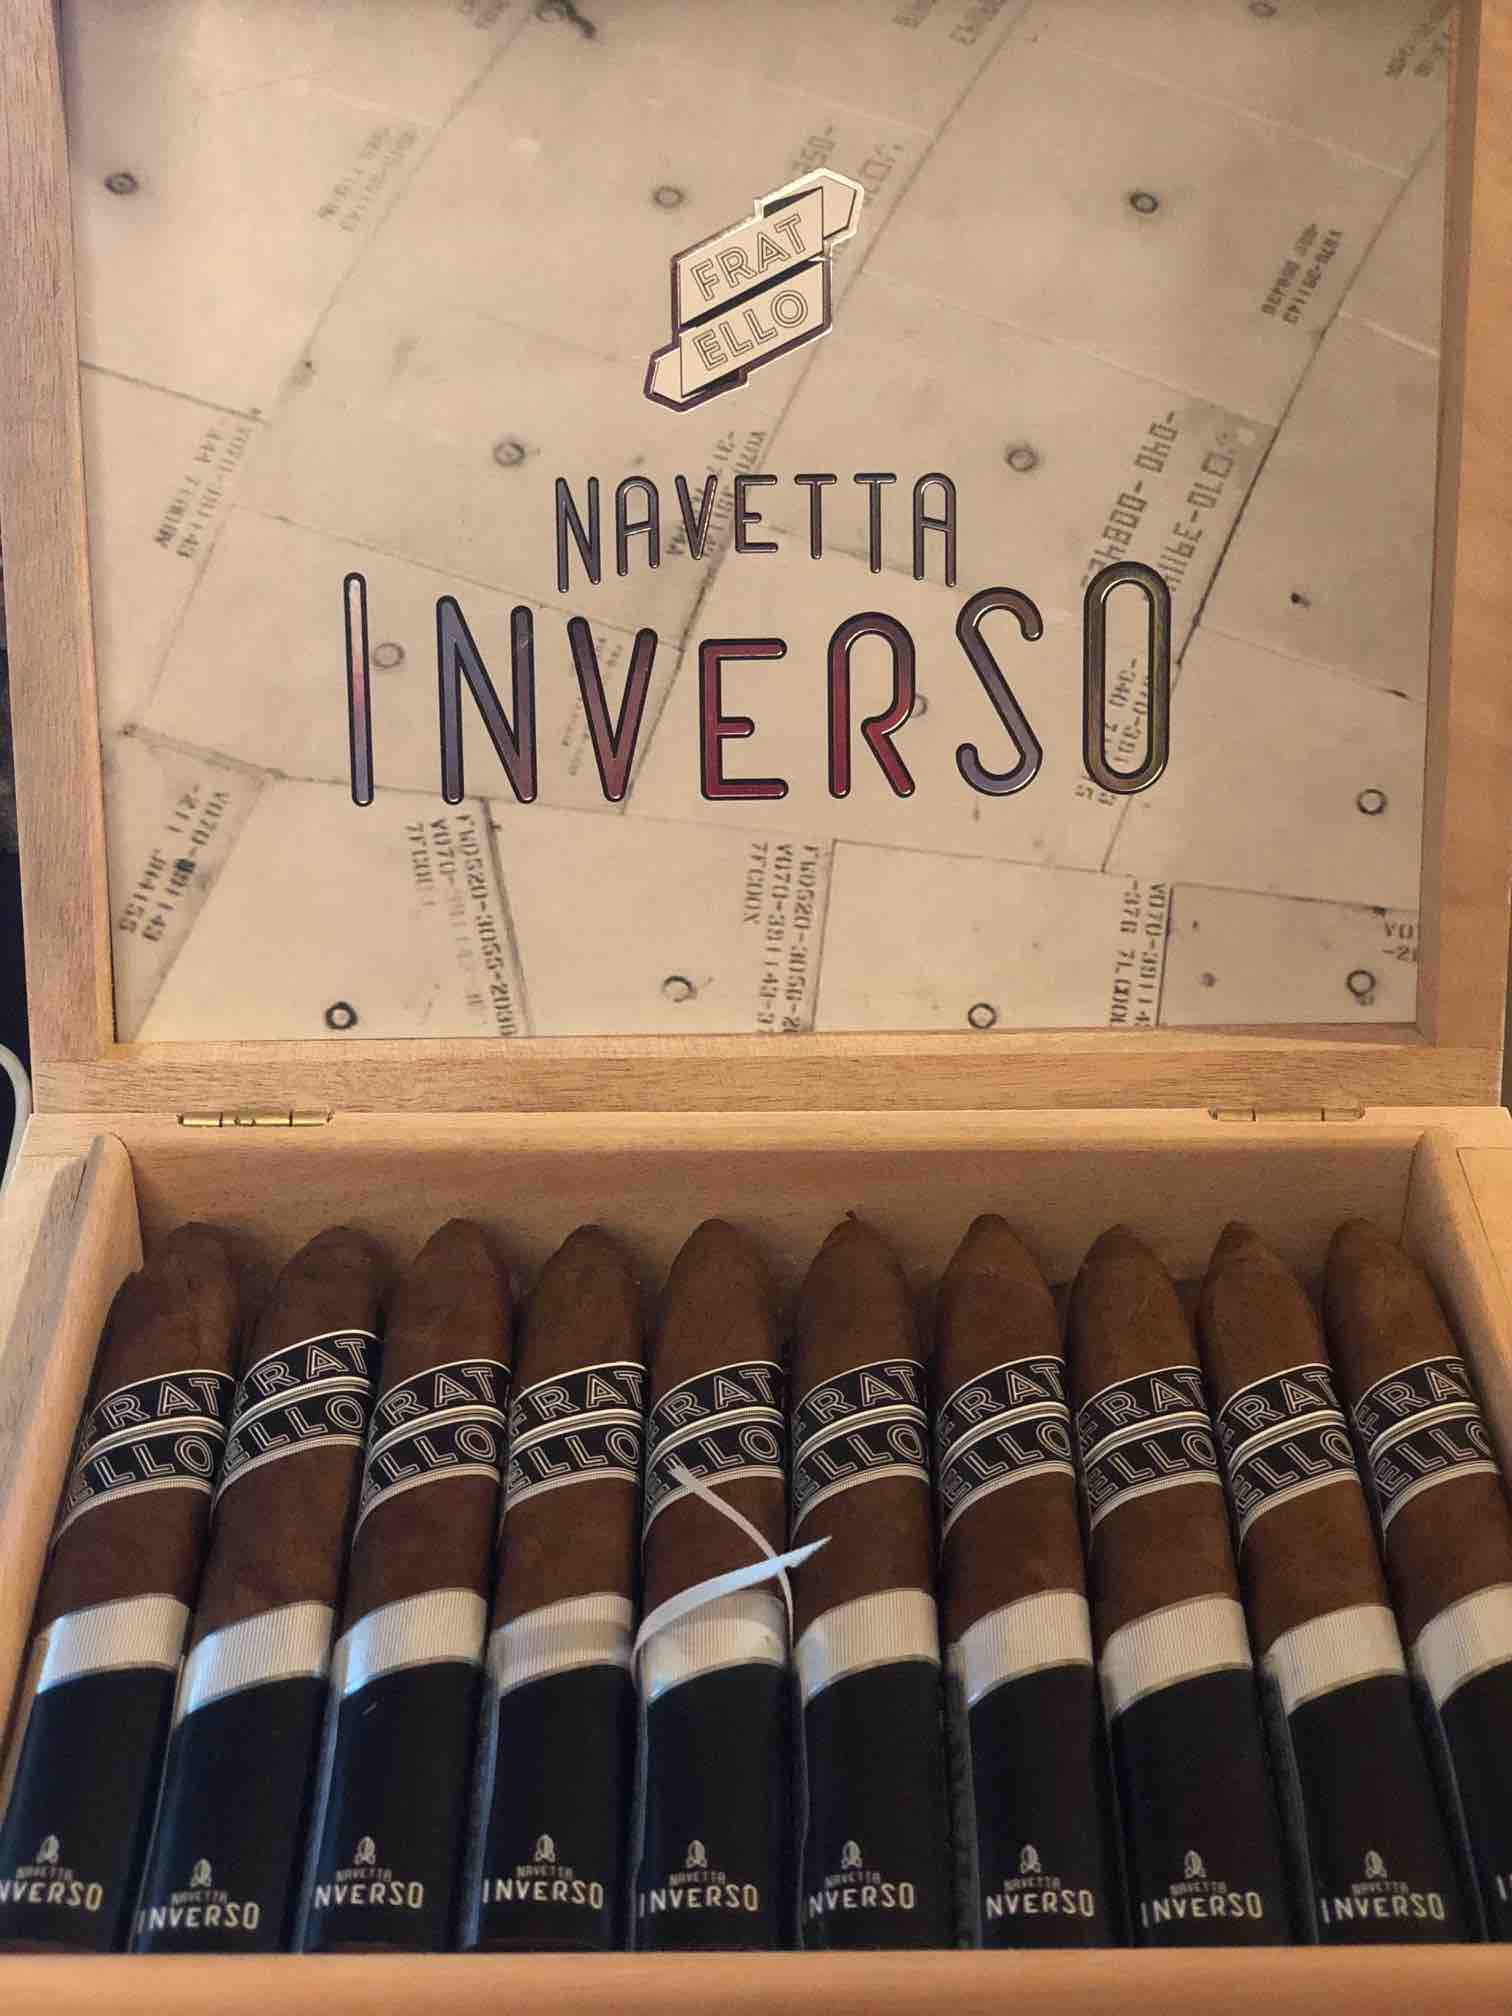 Cigar News: Fratello Navetta Inverso Boxer to Debut at the 2019 IPCPR Trade Show